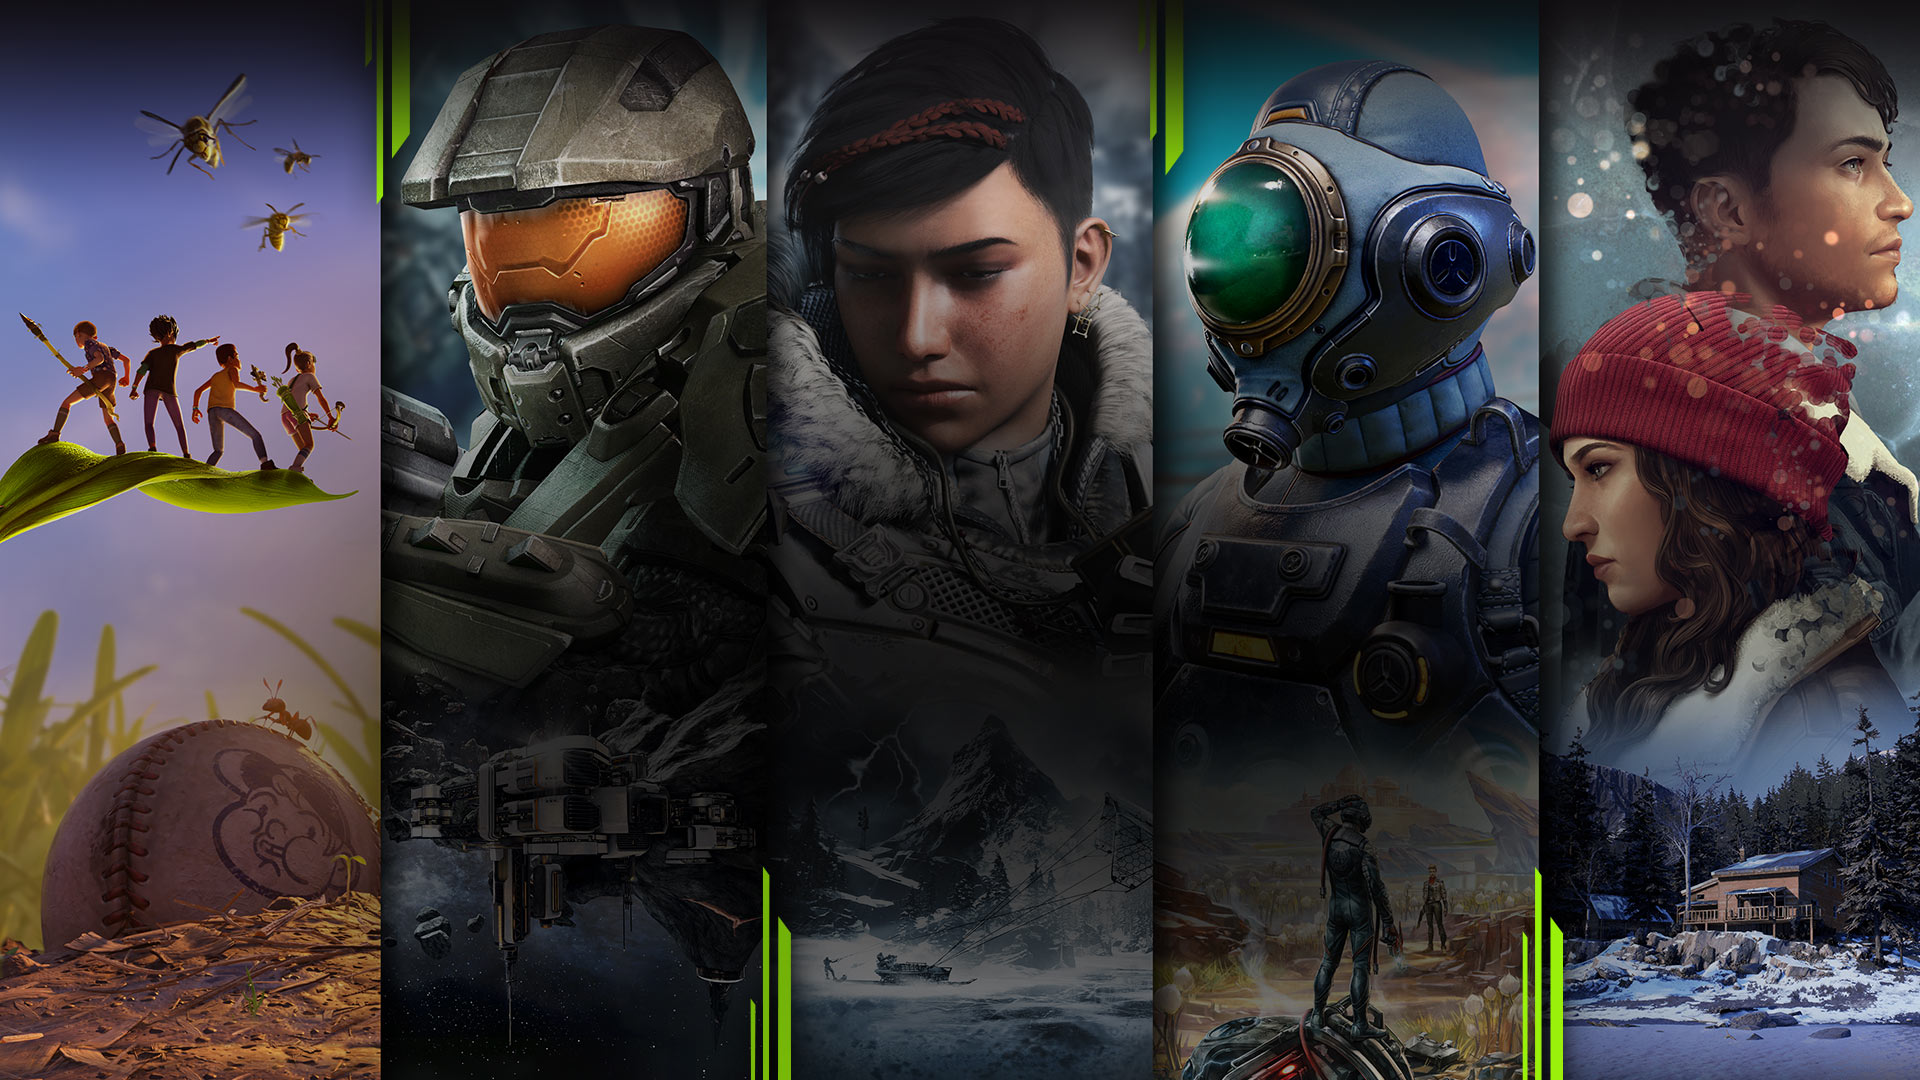 Game art from multiple games available with Xbox Game Pass including Grounded, Halo 4, Gears 5, The Outer Worlds and Tell Me Why.